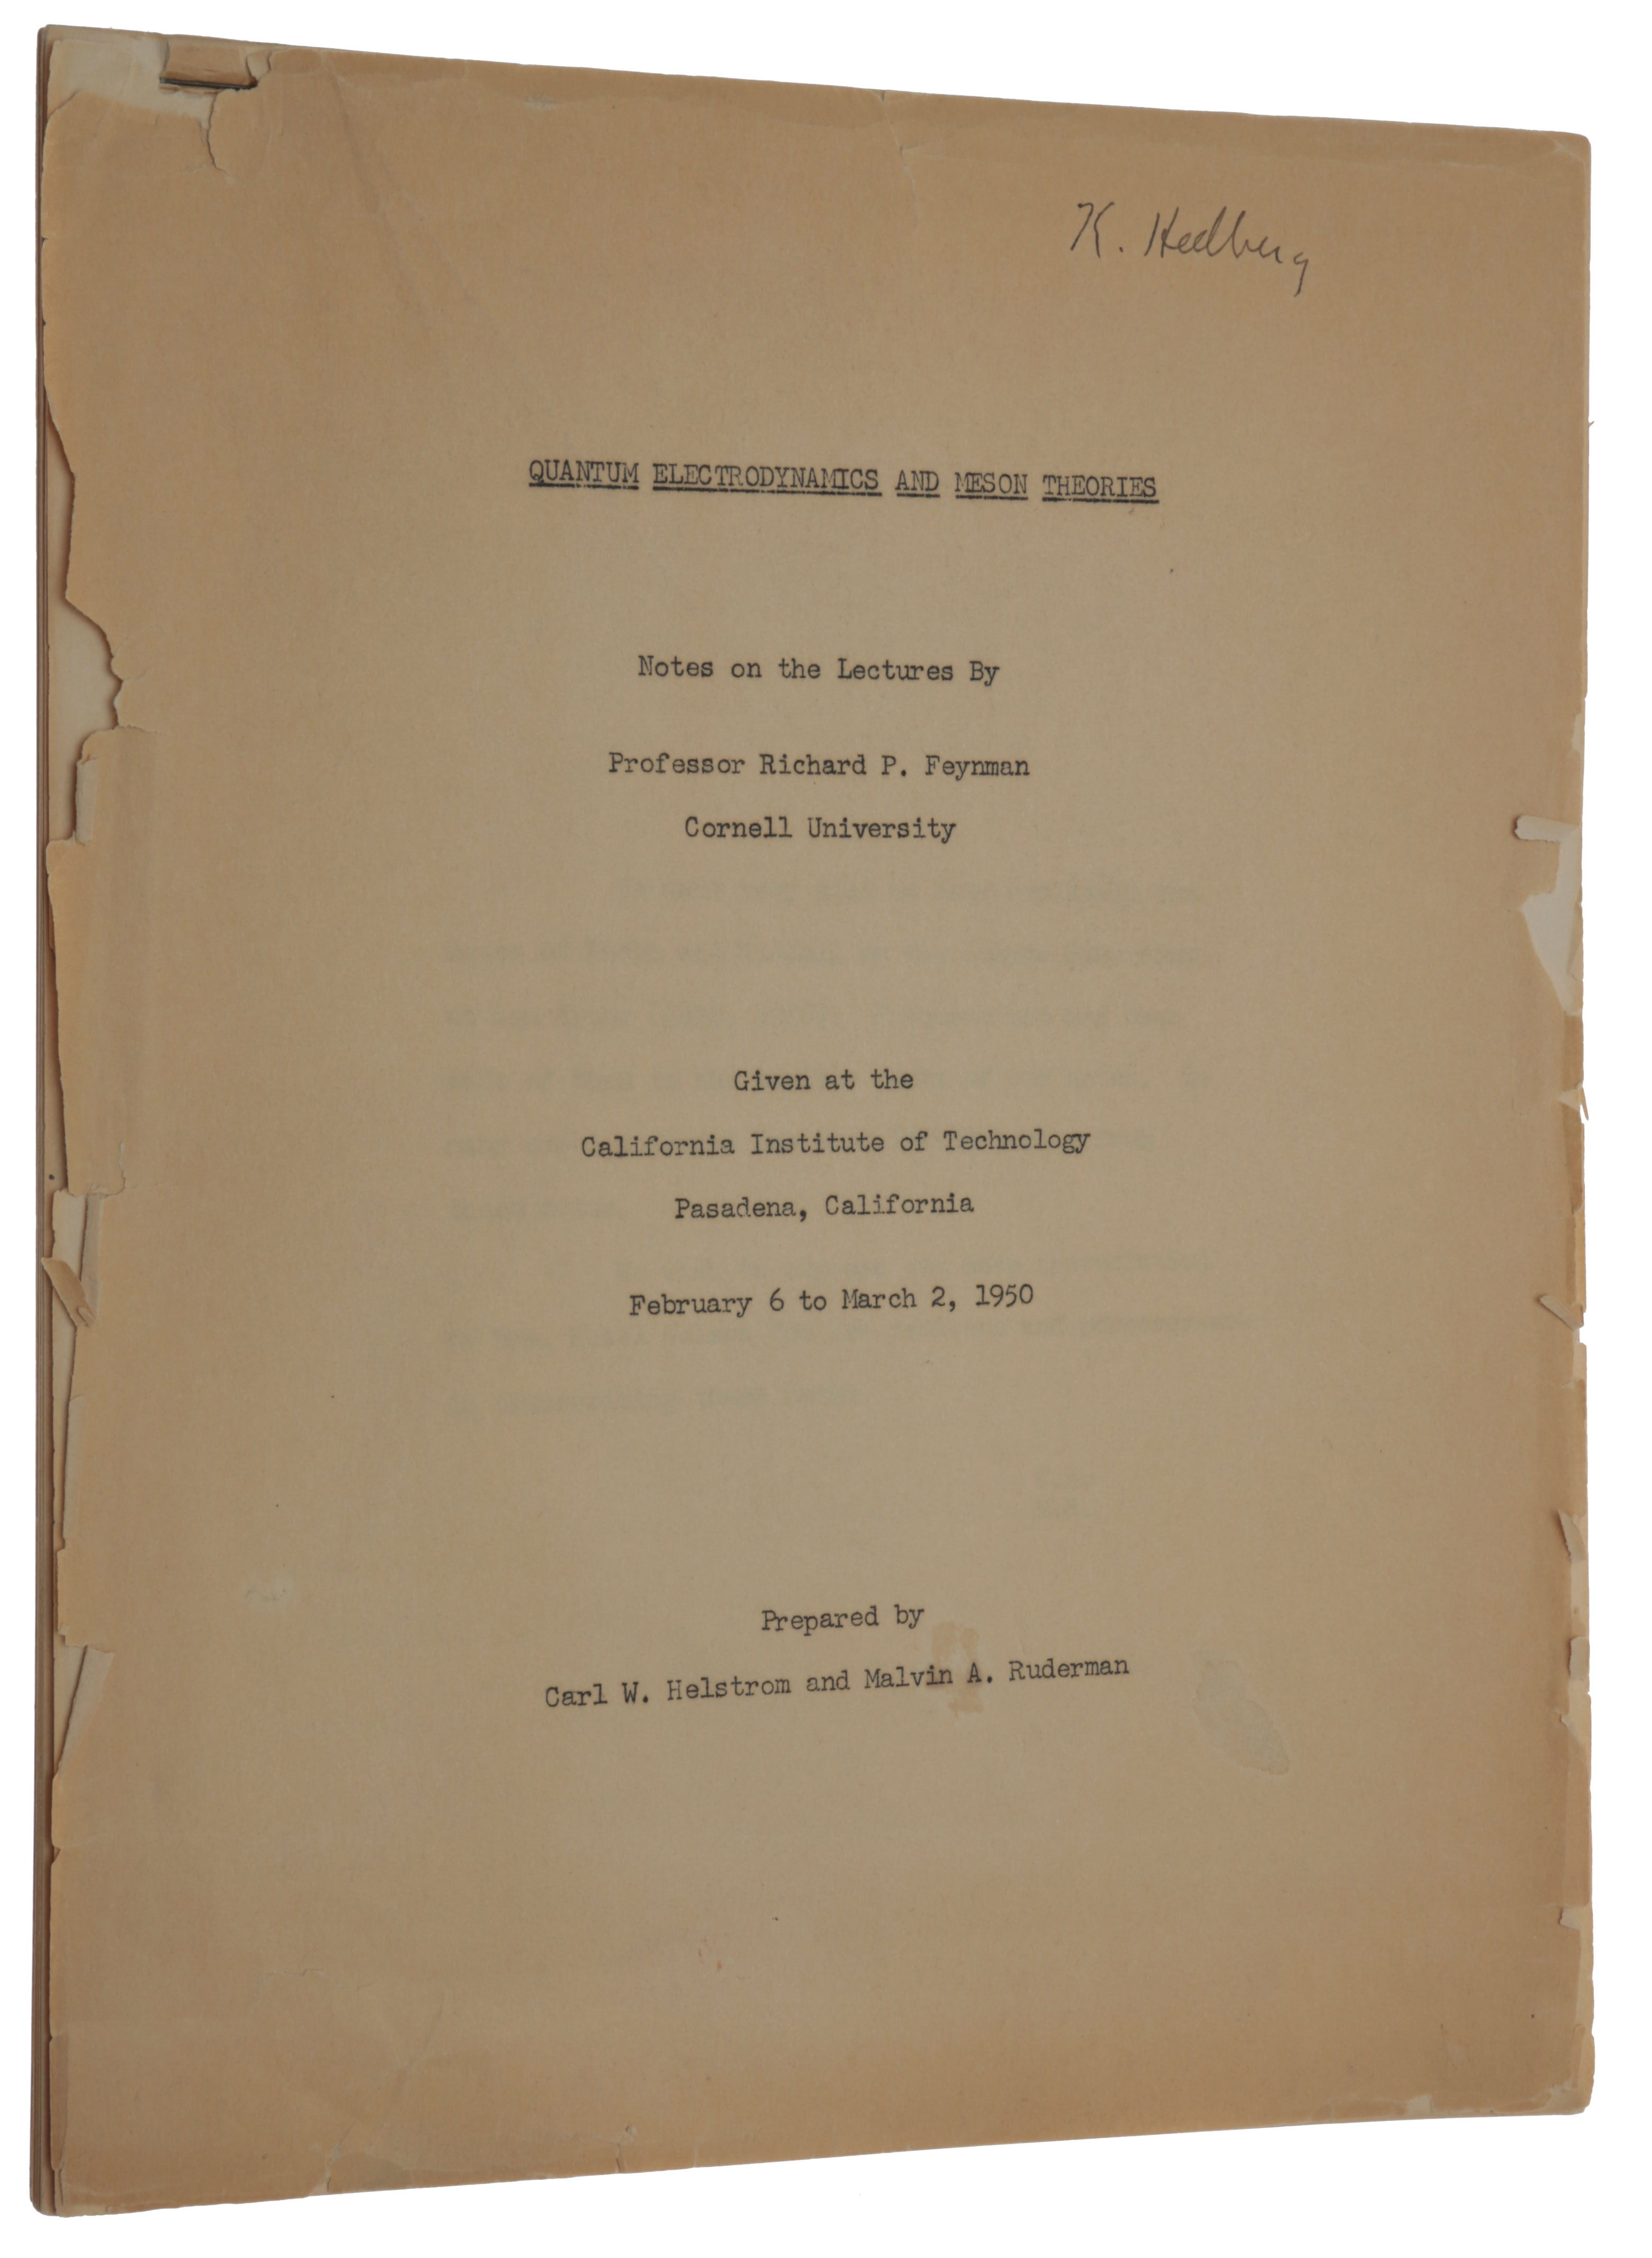 Quantum Electrodynamics and Meson Theories. Notes on the Lectures by Professor Richard P. Feynman, Cornell University. Given at the California Institute of Technology, Pasadena, California, February 6 to March 2, 1950. Prepared by Carl W. Helstrom and Malvin A. Ruderman. Richard P. FEYNMAN.